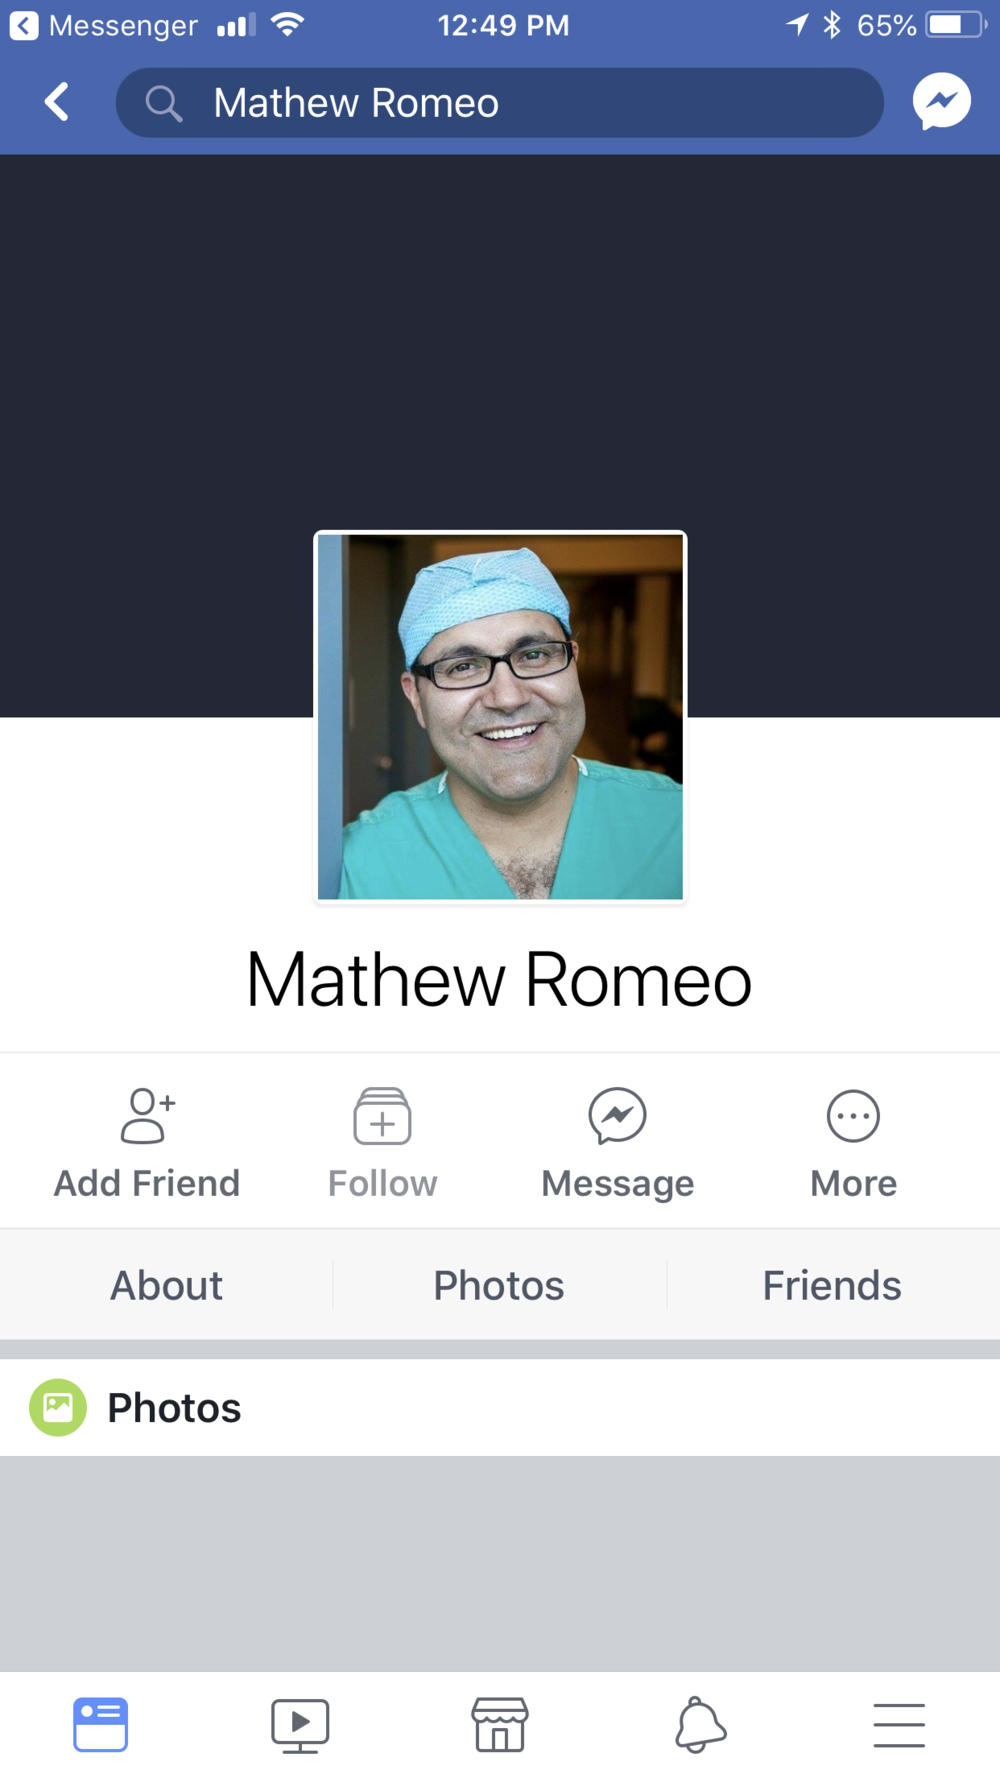 Enter Mathew ROMEO